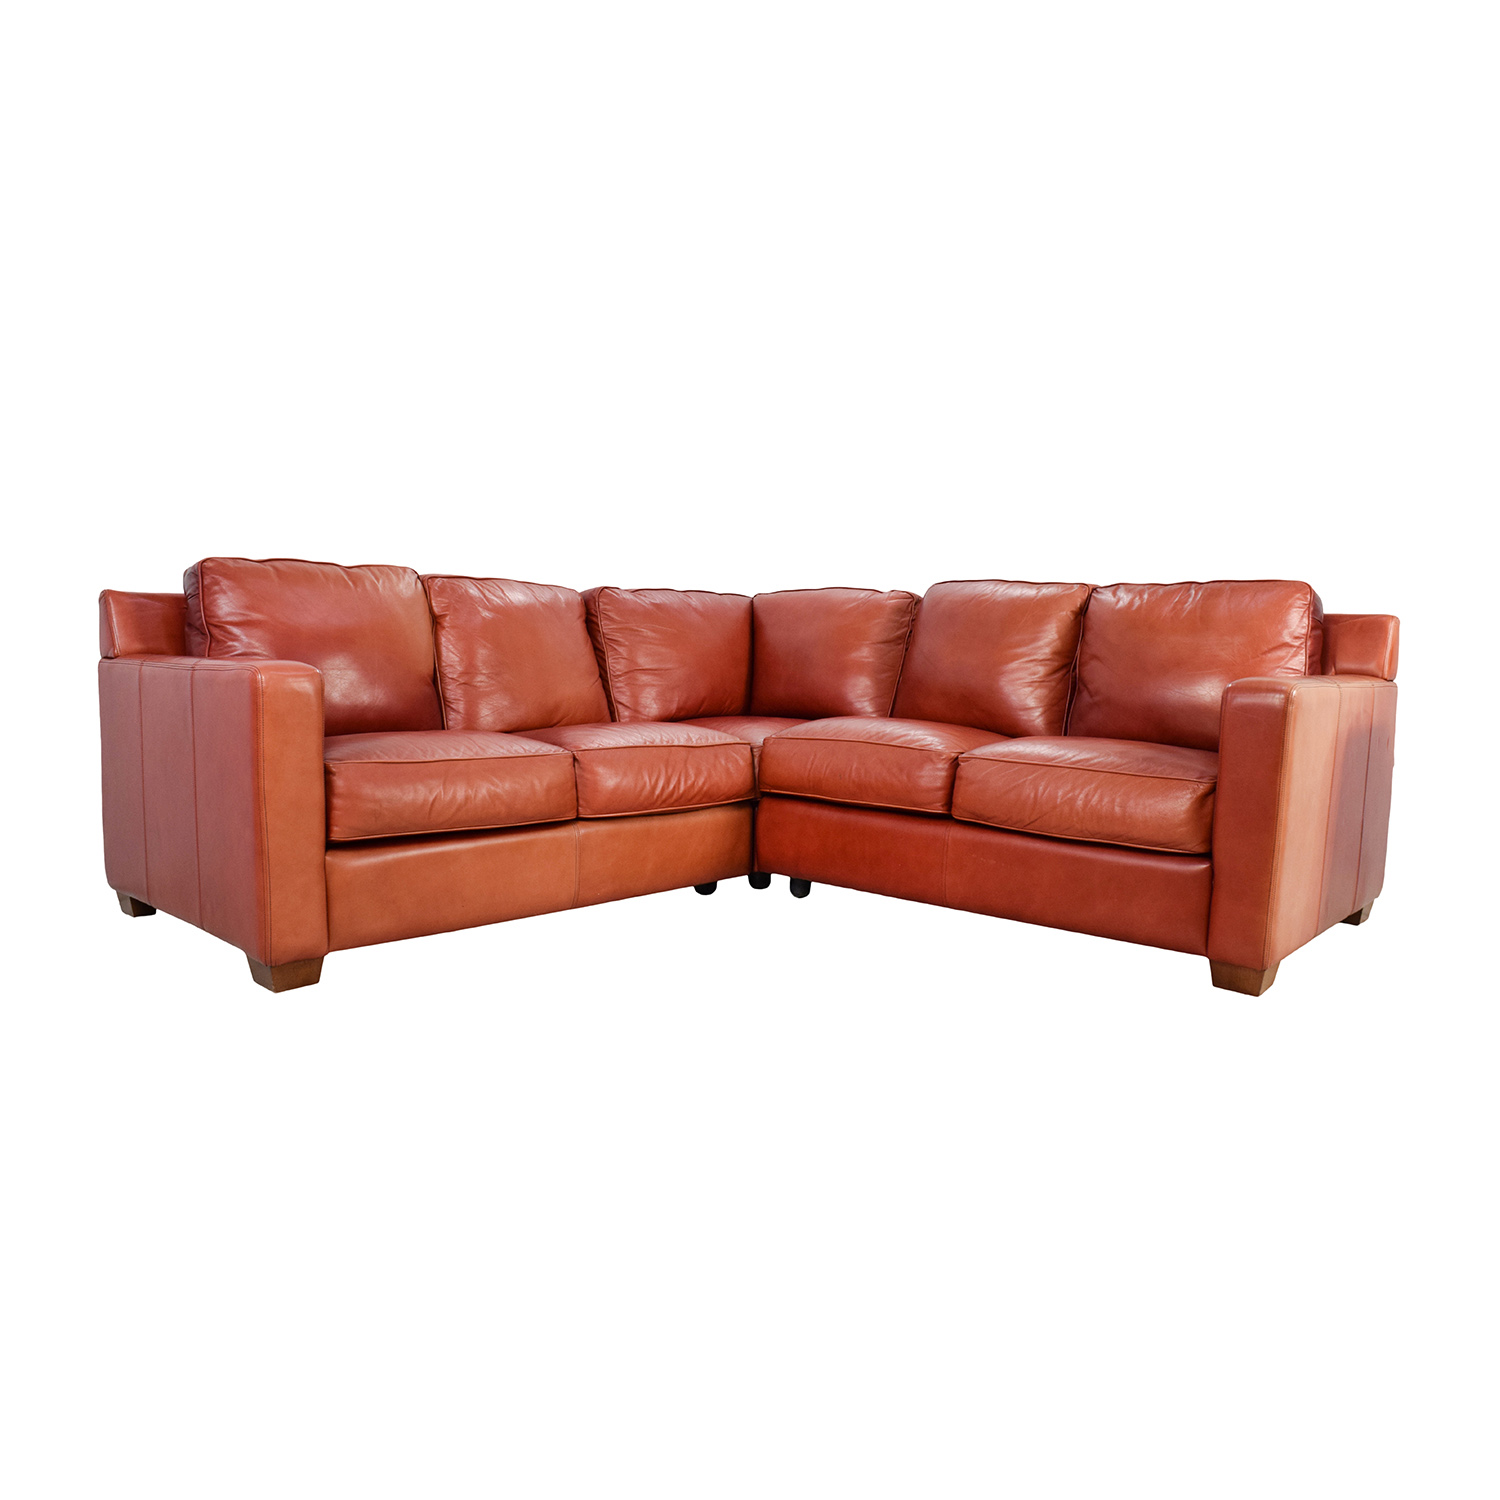 Thomasville Thomasville Red Leather Sectional discount